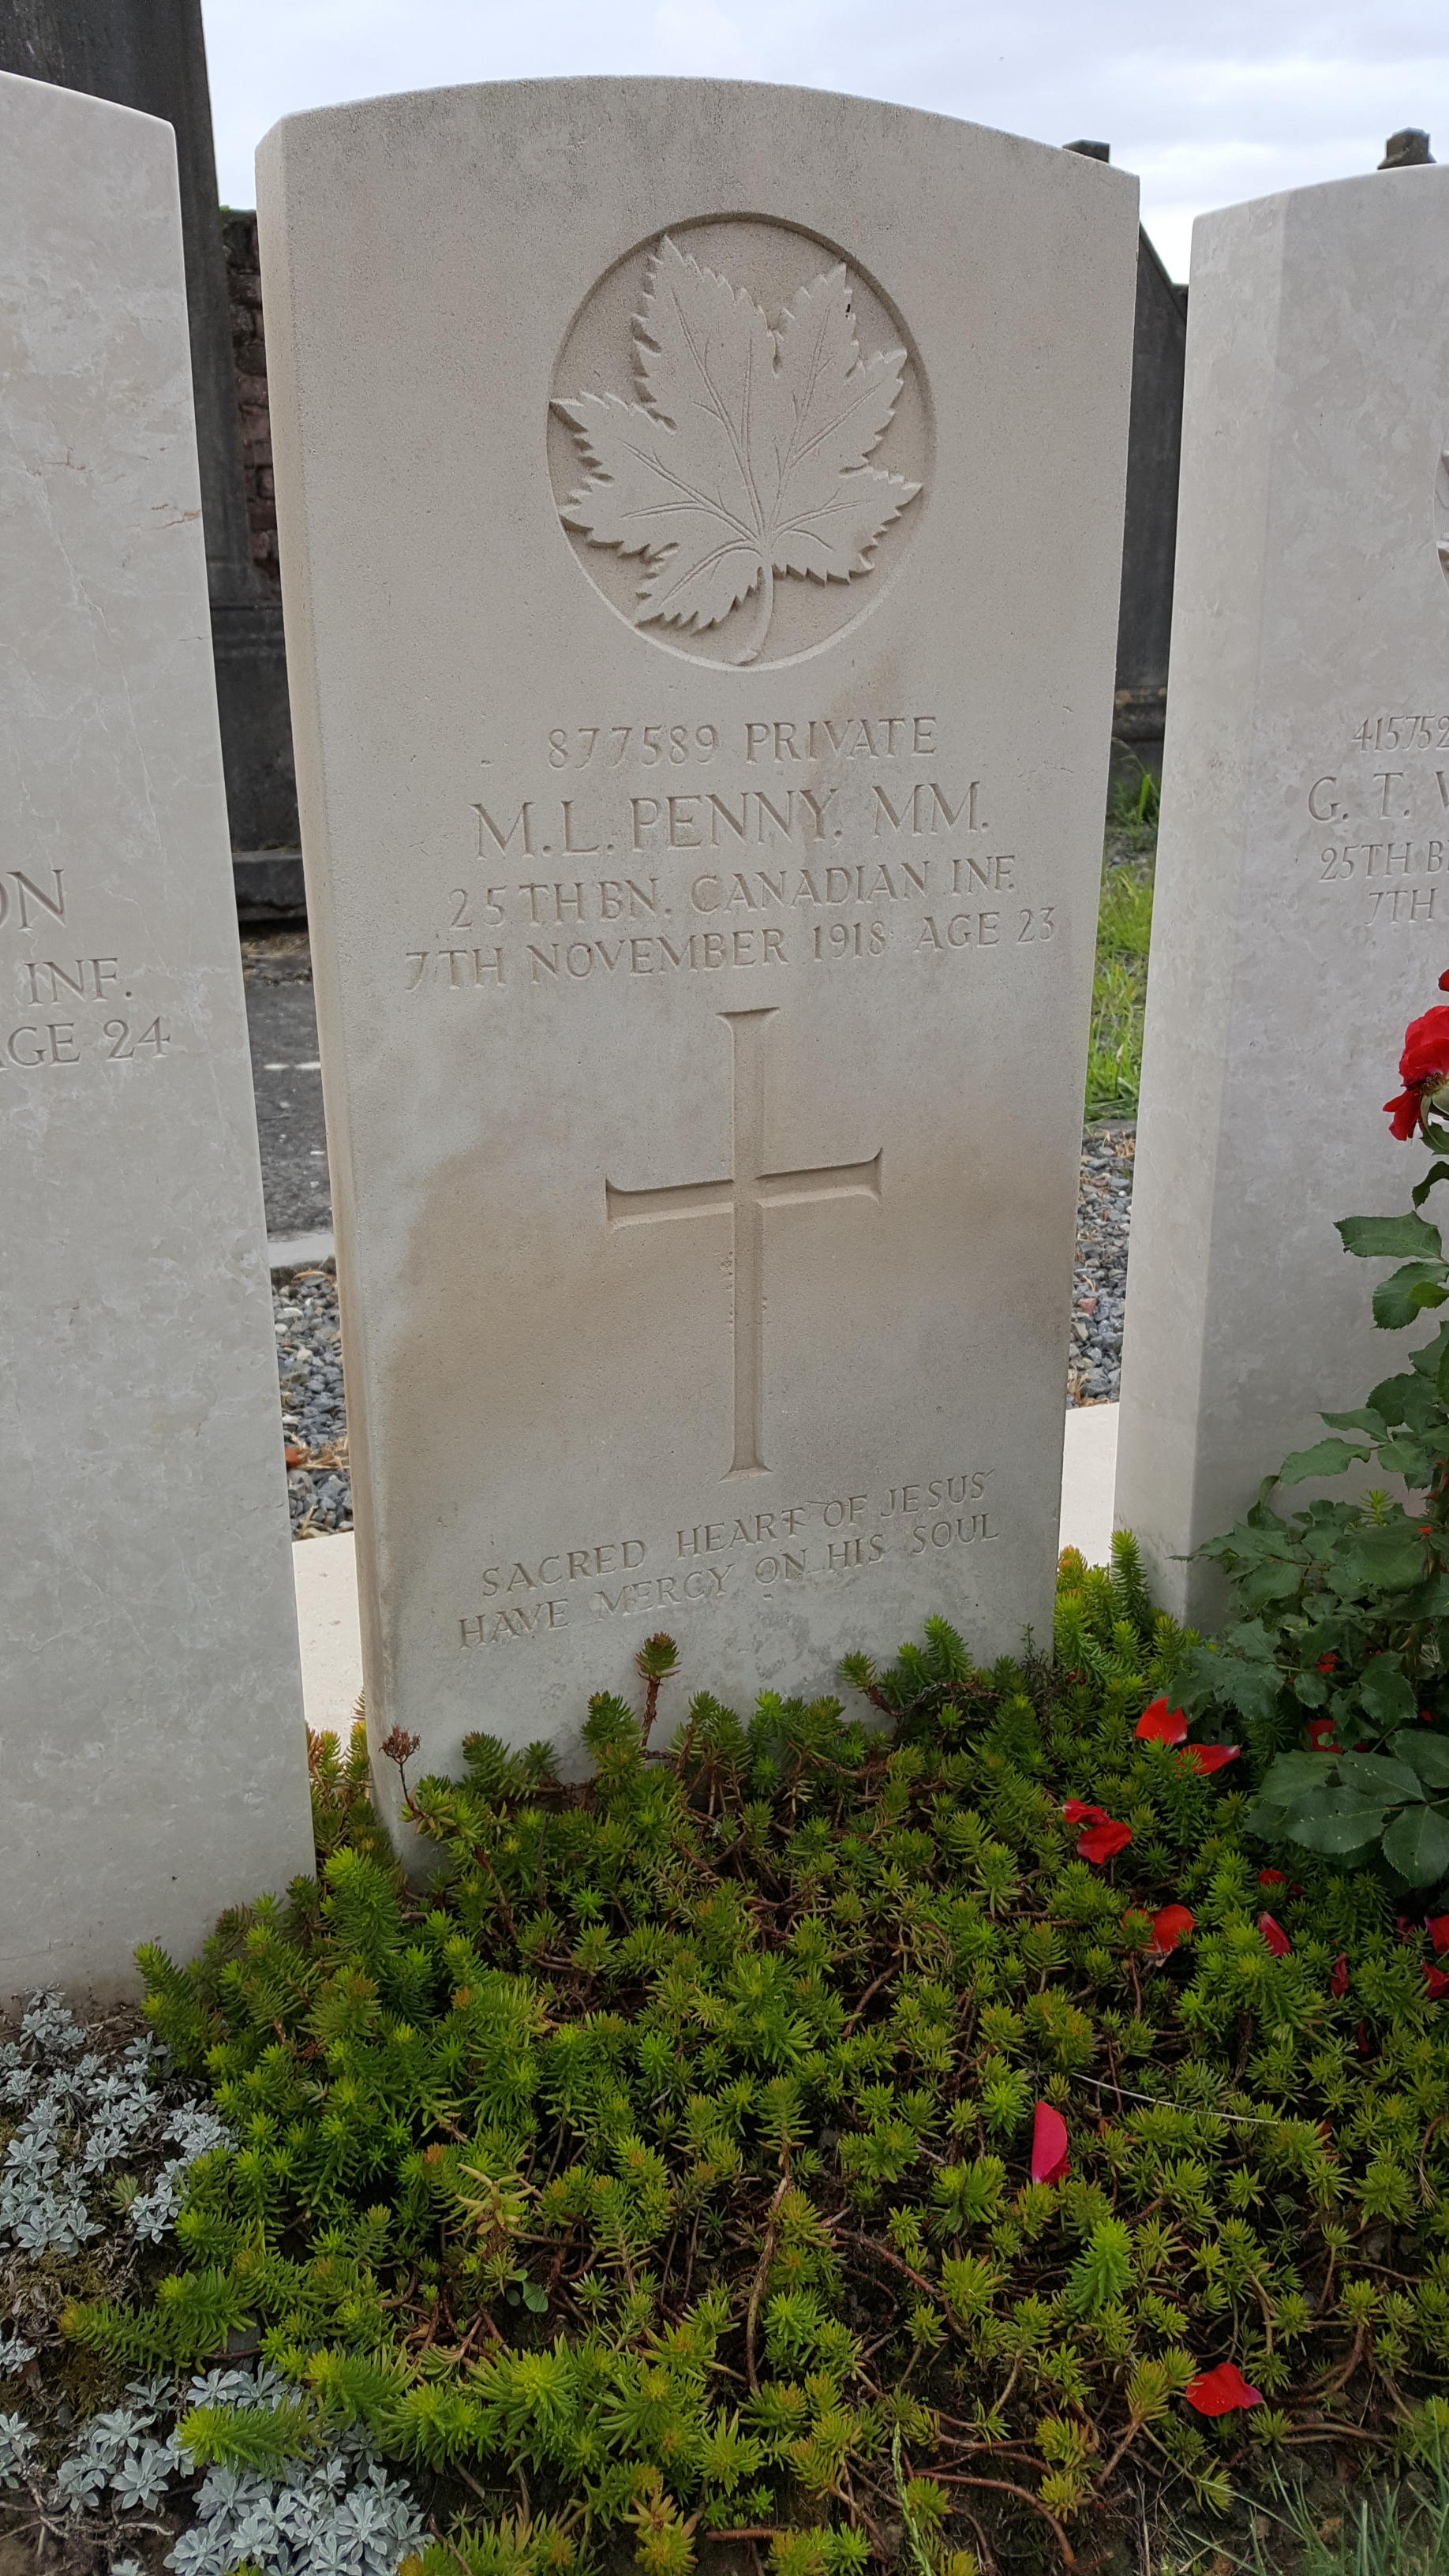 Grave marker– Photo taken by Alain Rosman on August 16, 2020 at the Elouges cemetery in Belgium.